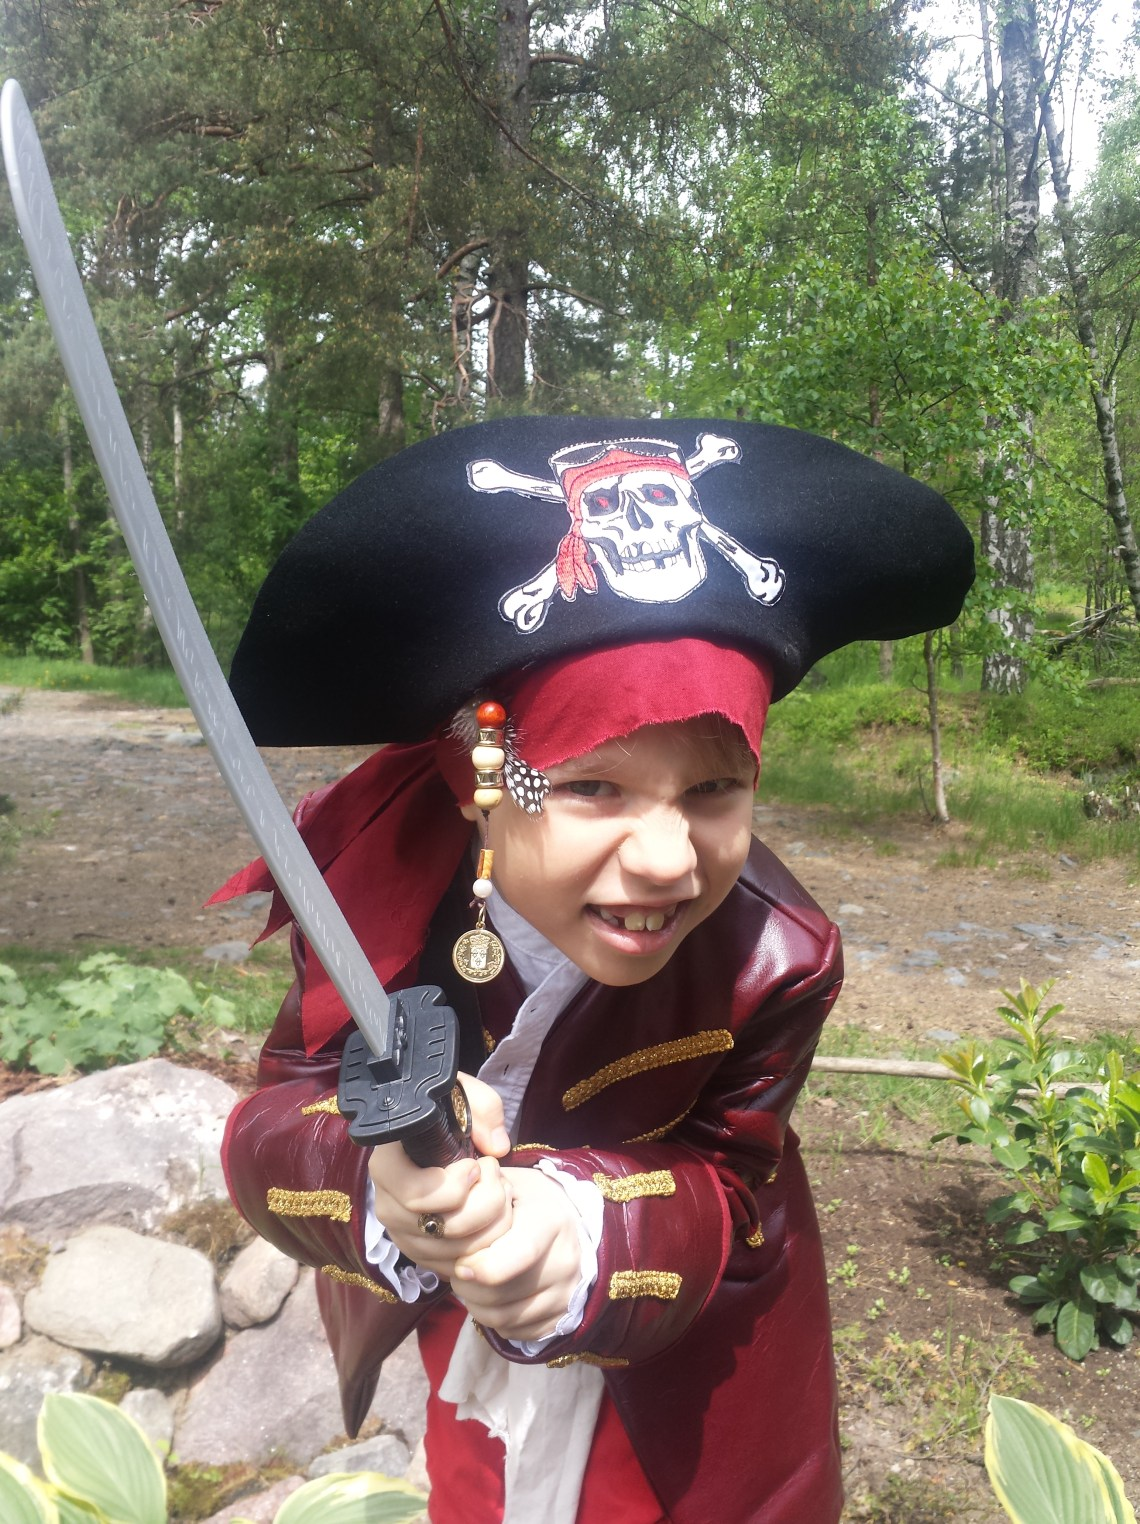 Burda 2452 pirate costume.